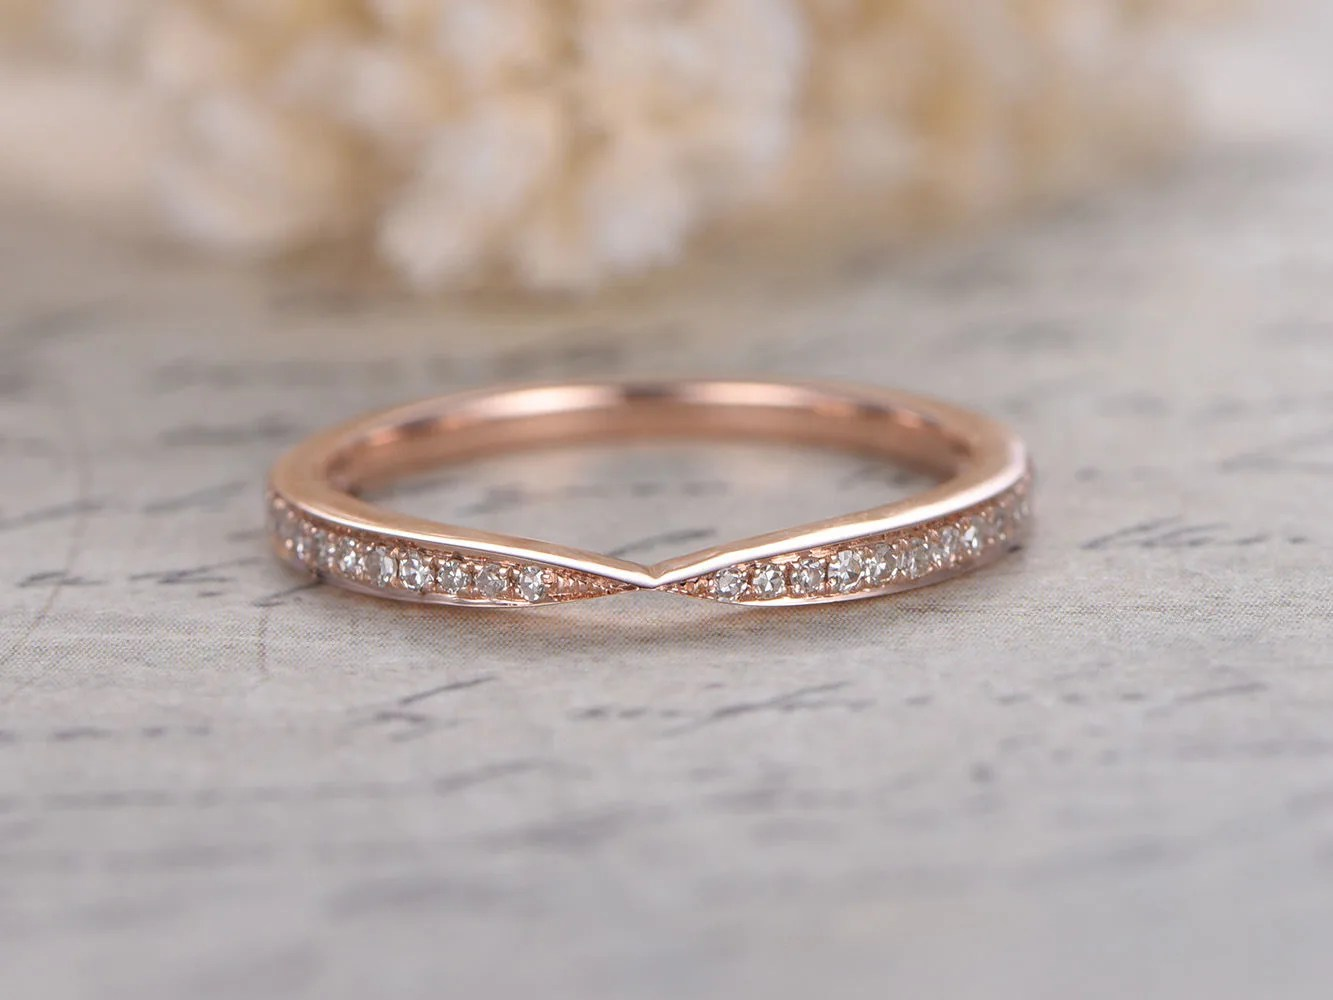 curved wedding band chevron wedding band Curved Wedding Band Chevron Wedding Band Twist Wedding Ring Half Eternity Ring Art Deco Band Vintage Style Stacking Ring 14K Rose Gold